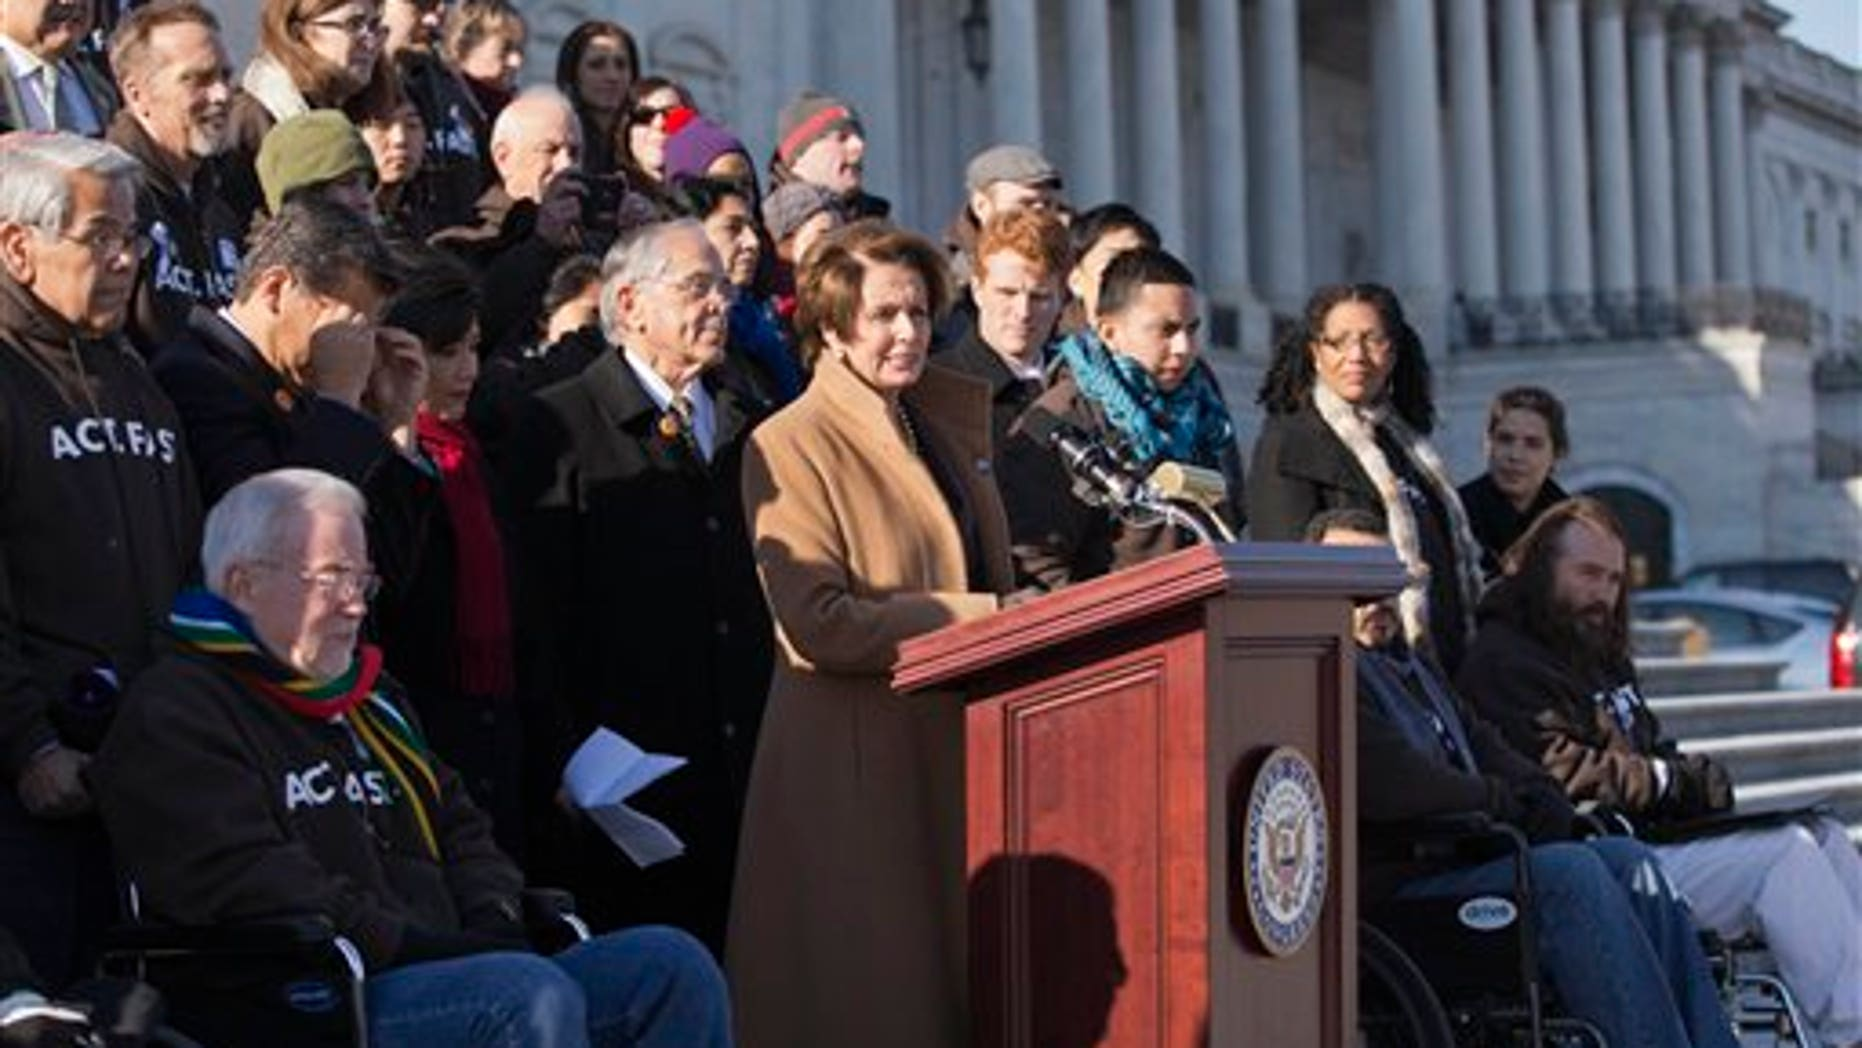 "FILE - In this Dec. 12, 2013, file photo House Minority Leader, Democrat Nancy Pelosi of California, at the podium, is joined by Congressional Hispanic Caucus Chairman Rep. Ruben Hinojosa, D-Texas, to her left, as she calls for action on immigration reform on Capitol Hill in Washington with other lawmakers and activists. Democrats are planning to rely on an infrequently used and rarely successful tactic to shine an election-year spotlight on Republican opposition to raising the minimum wage and overhauling immigration laws: its known as a ""discharge petition. It requires the minority party to persuade some two dozen Republicans to defy their leadership. (AP Photo/J. Scott Applewhite, File)"